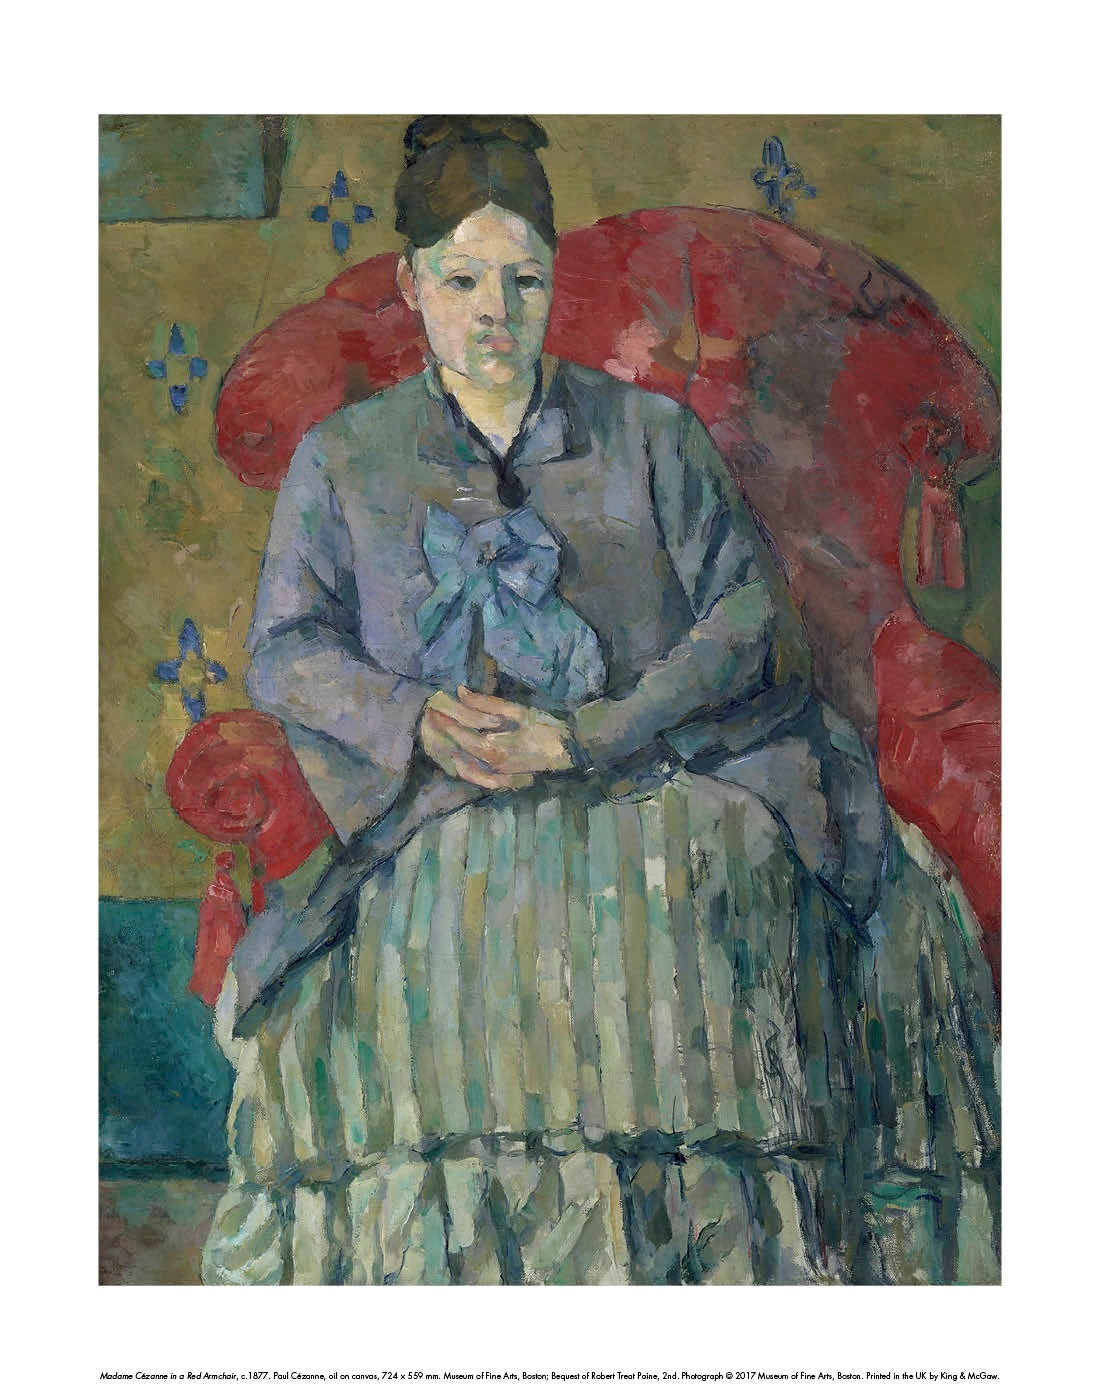 Madame Cézanne in a Red Armchair, c. 1877 Mini-print